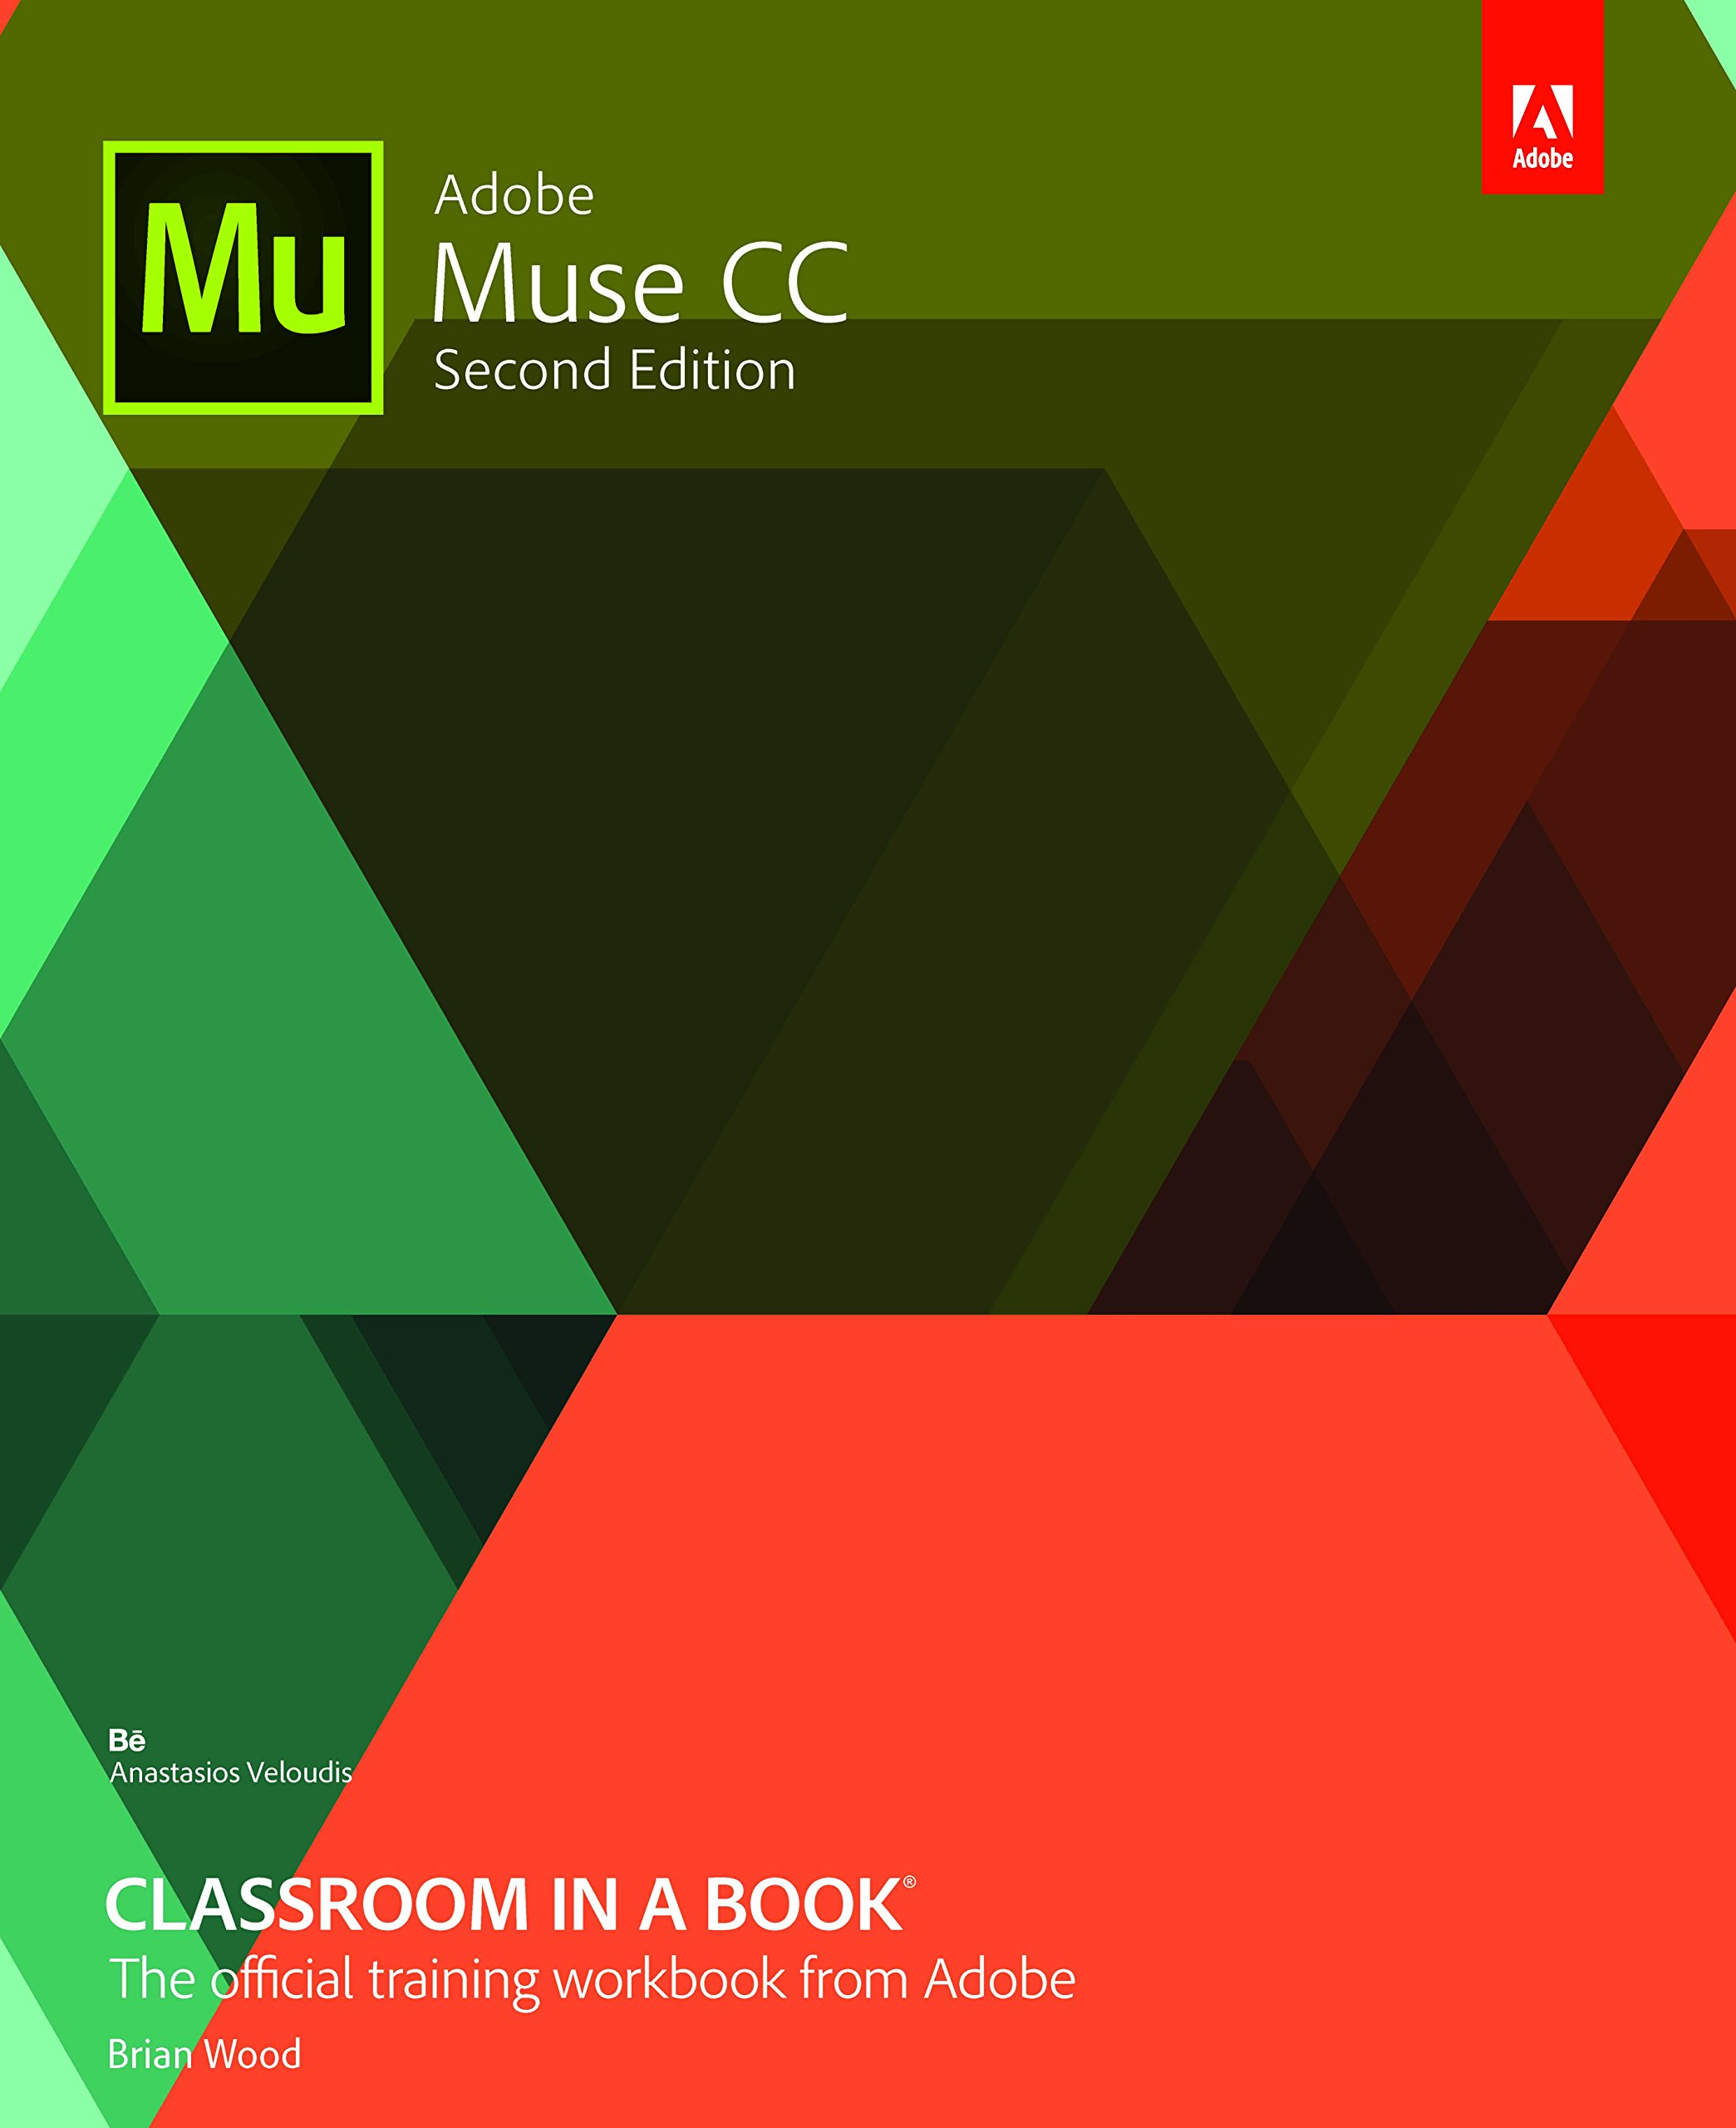 Buy Adobe Muse CC Classroom in a Book Book Online at Low Prices in India |  Adobe Muse CC Classroom in a Book Reviews & Ratings - Amazon.in